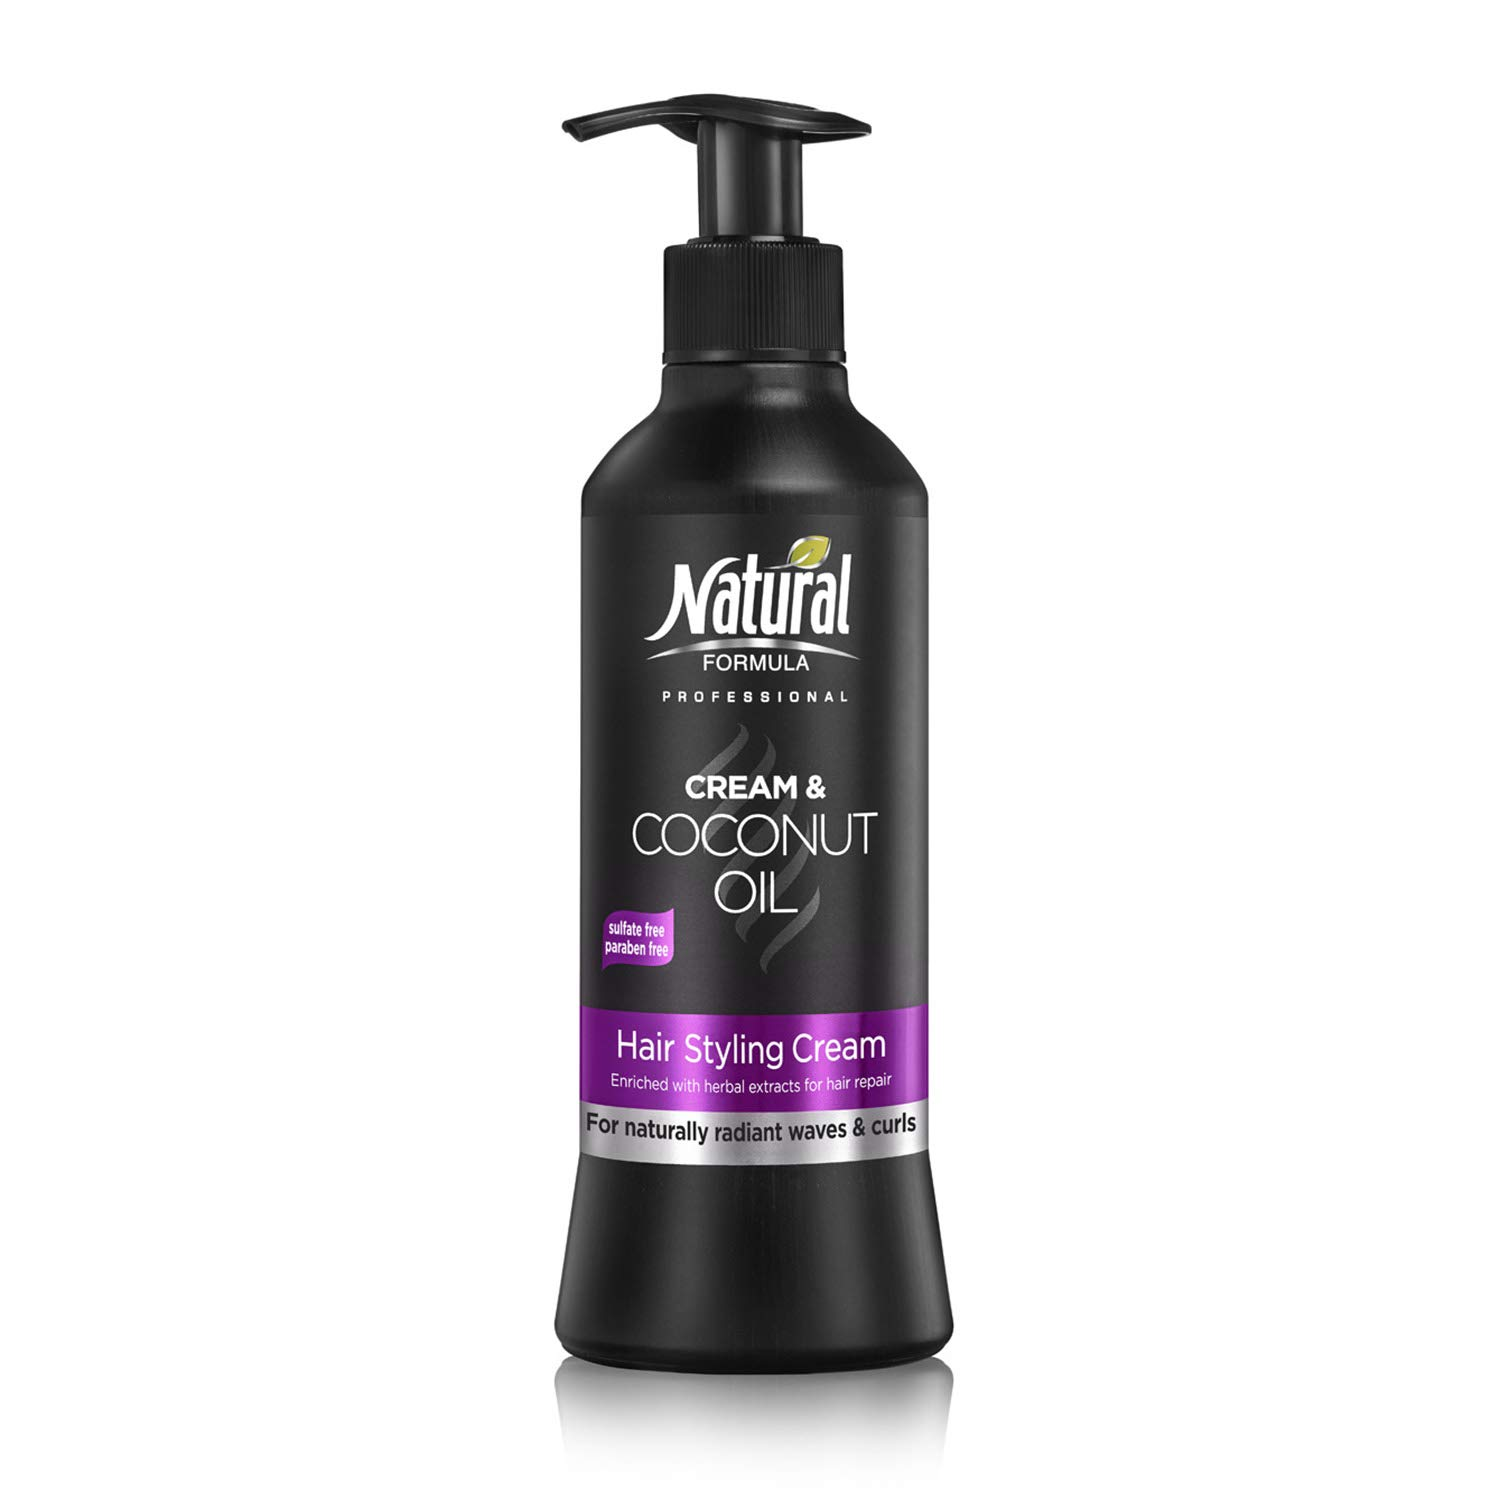 Natural Formula Professional Hair Moisturizer With Coconut Oil For Healthy, Frizz-Free & Naturally Glowing Curls and Waves Paraben and Sulfate Free 13.5 Fl Oz